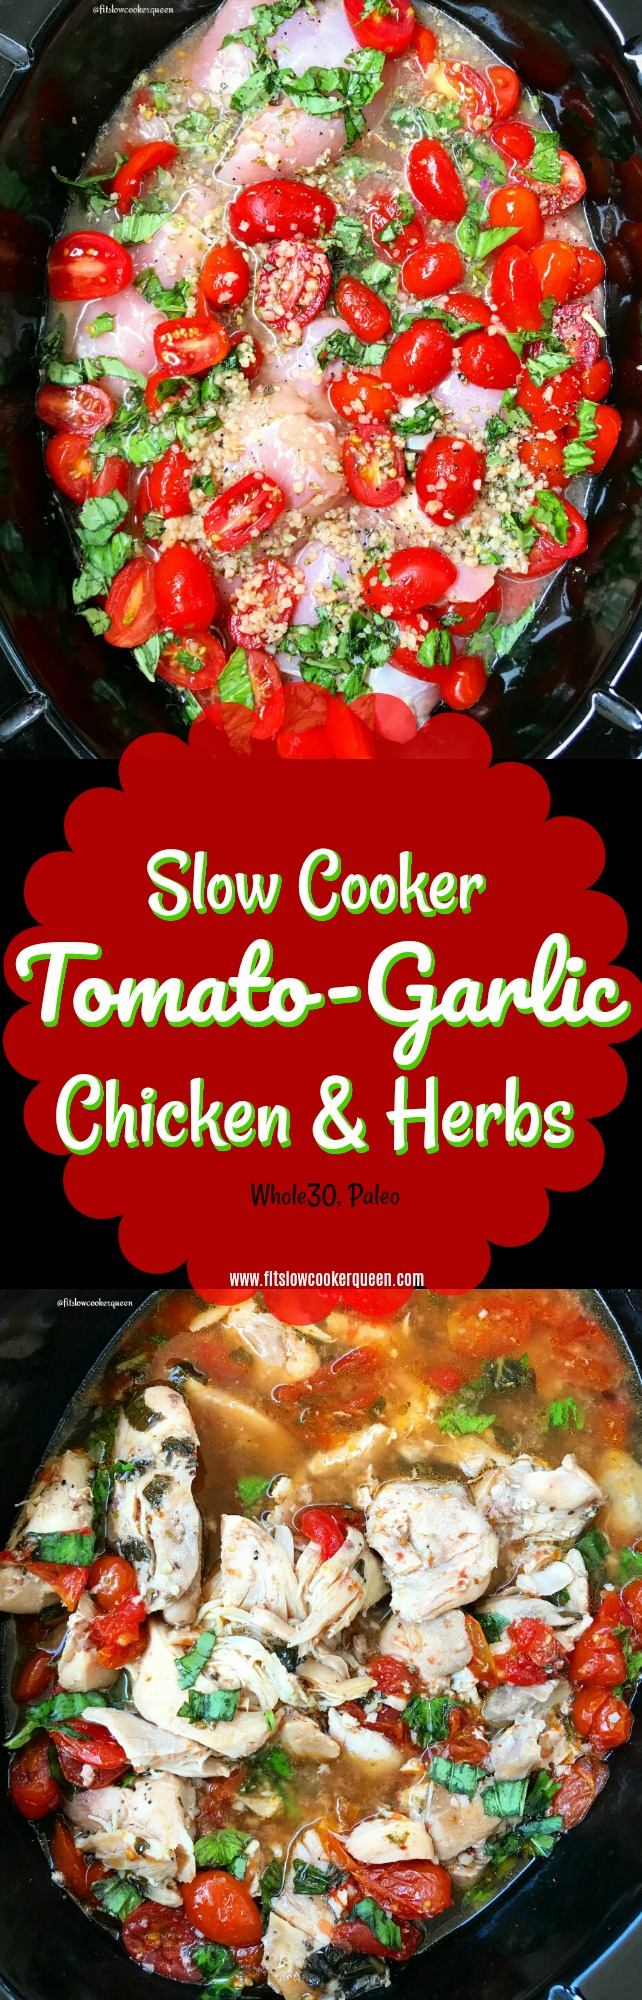 Chicken and a homemade tomato-garlic sauce cook together in this simple yet flavor healthy (whole30, paleo) slow cooker recipe.